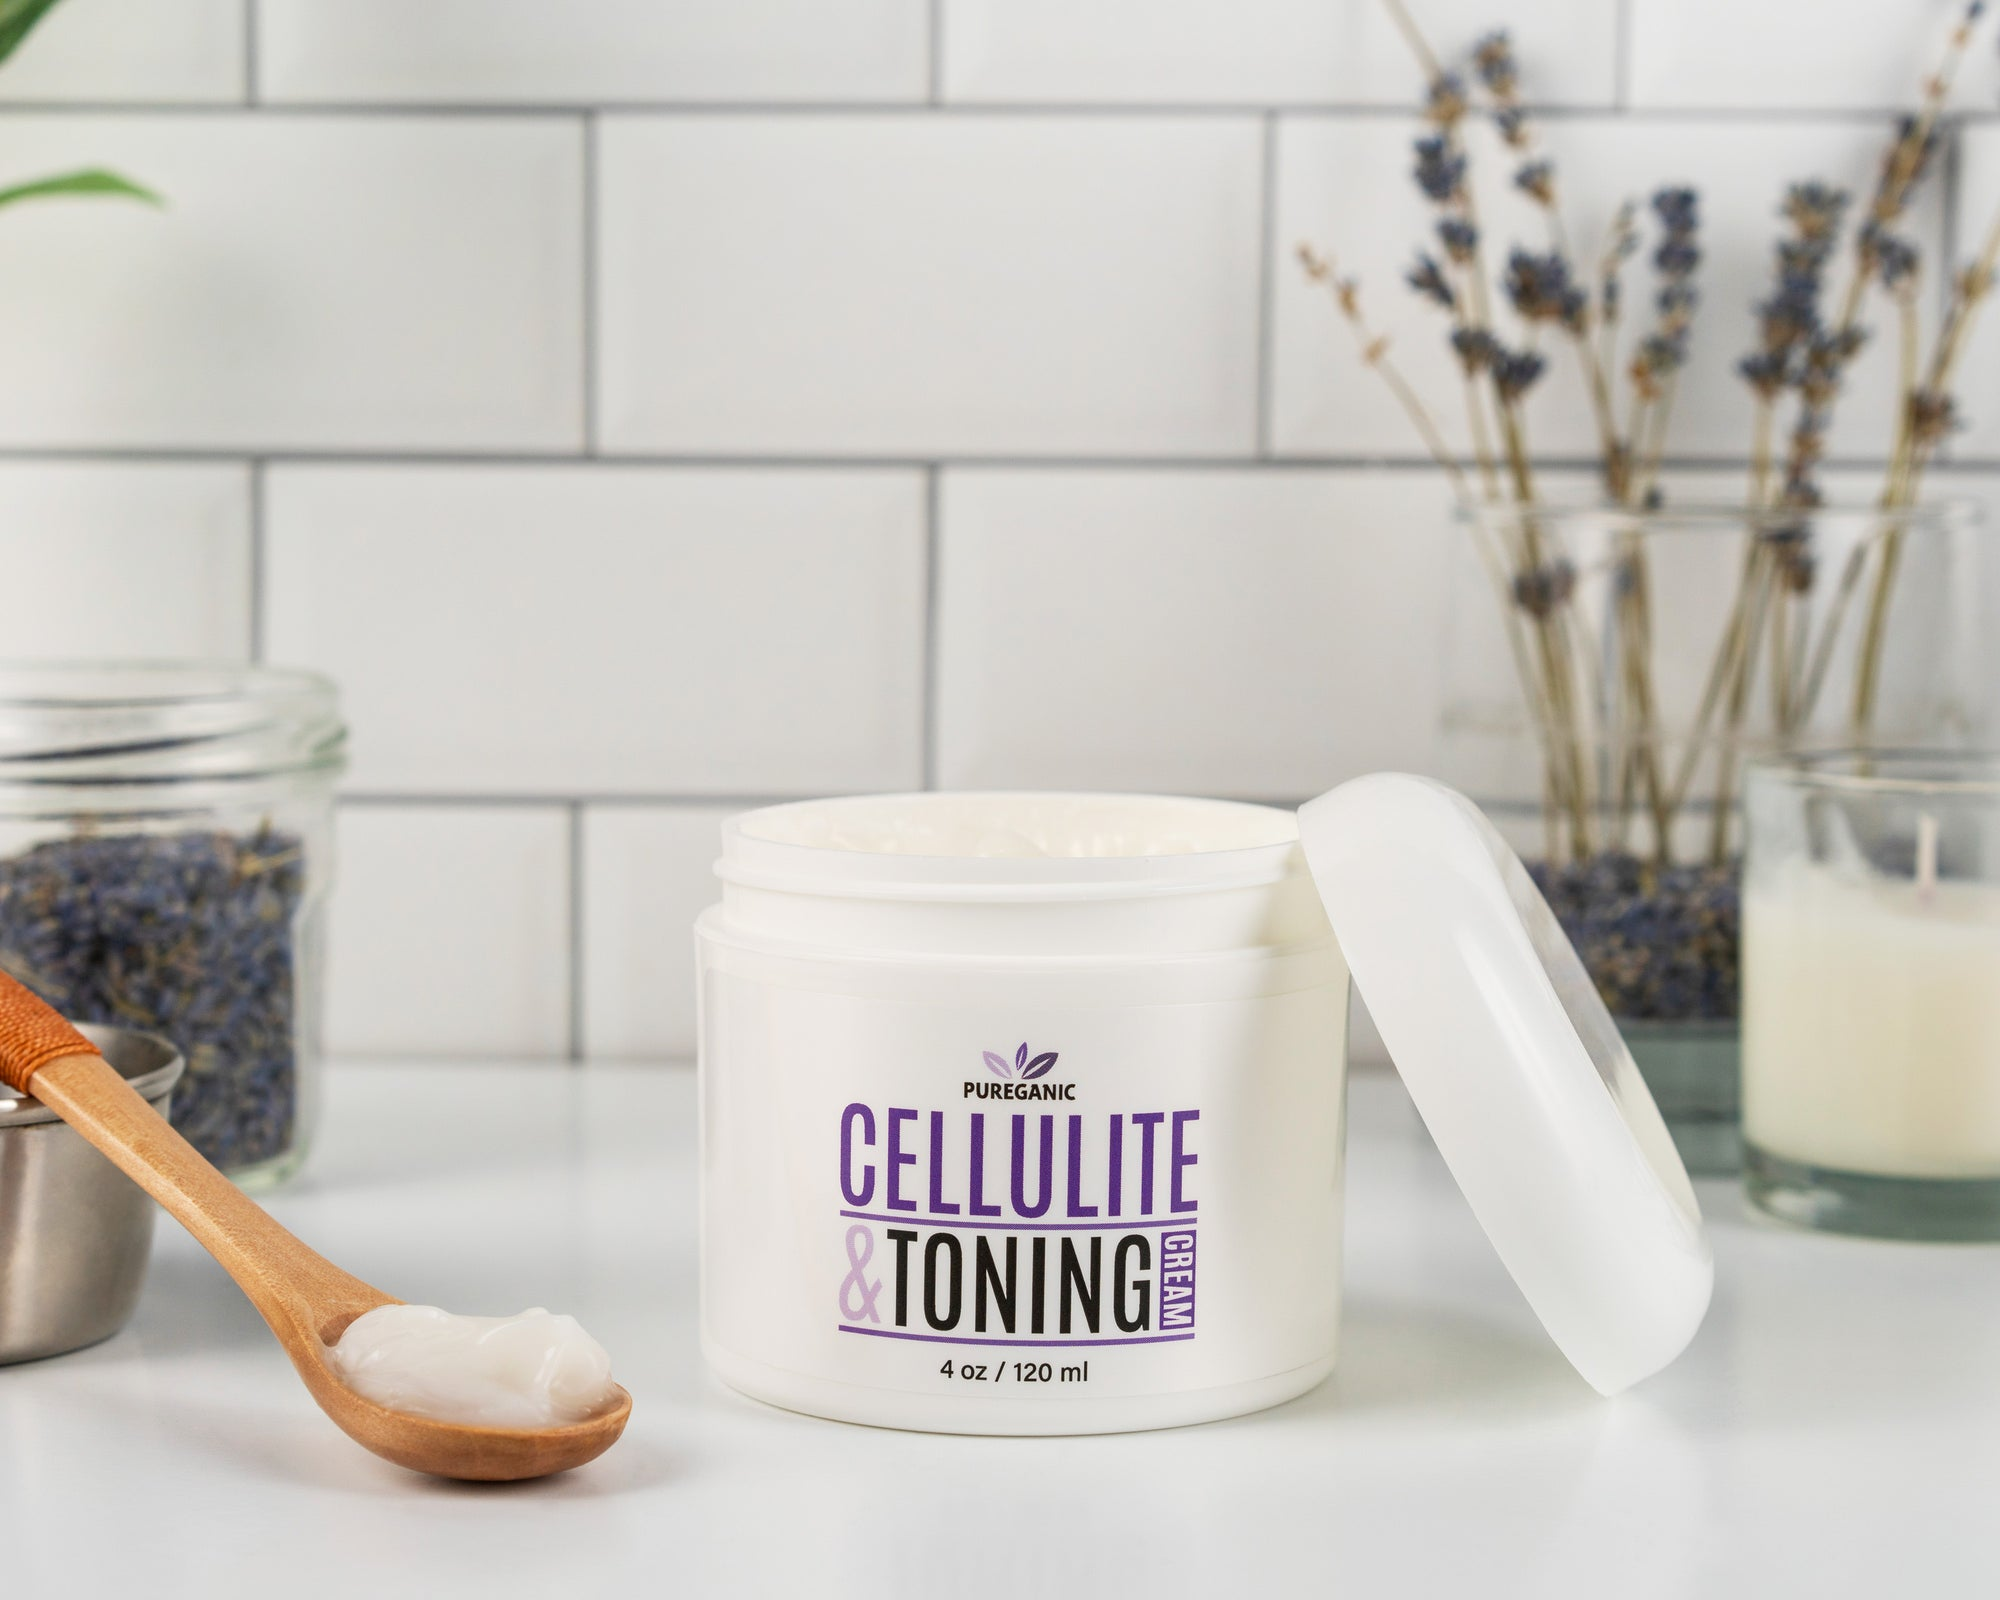 Cellulite & Toning Cream